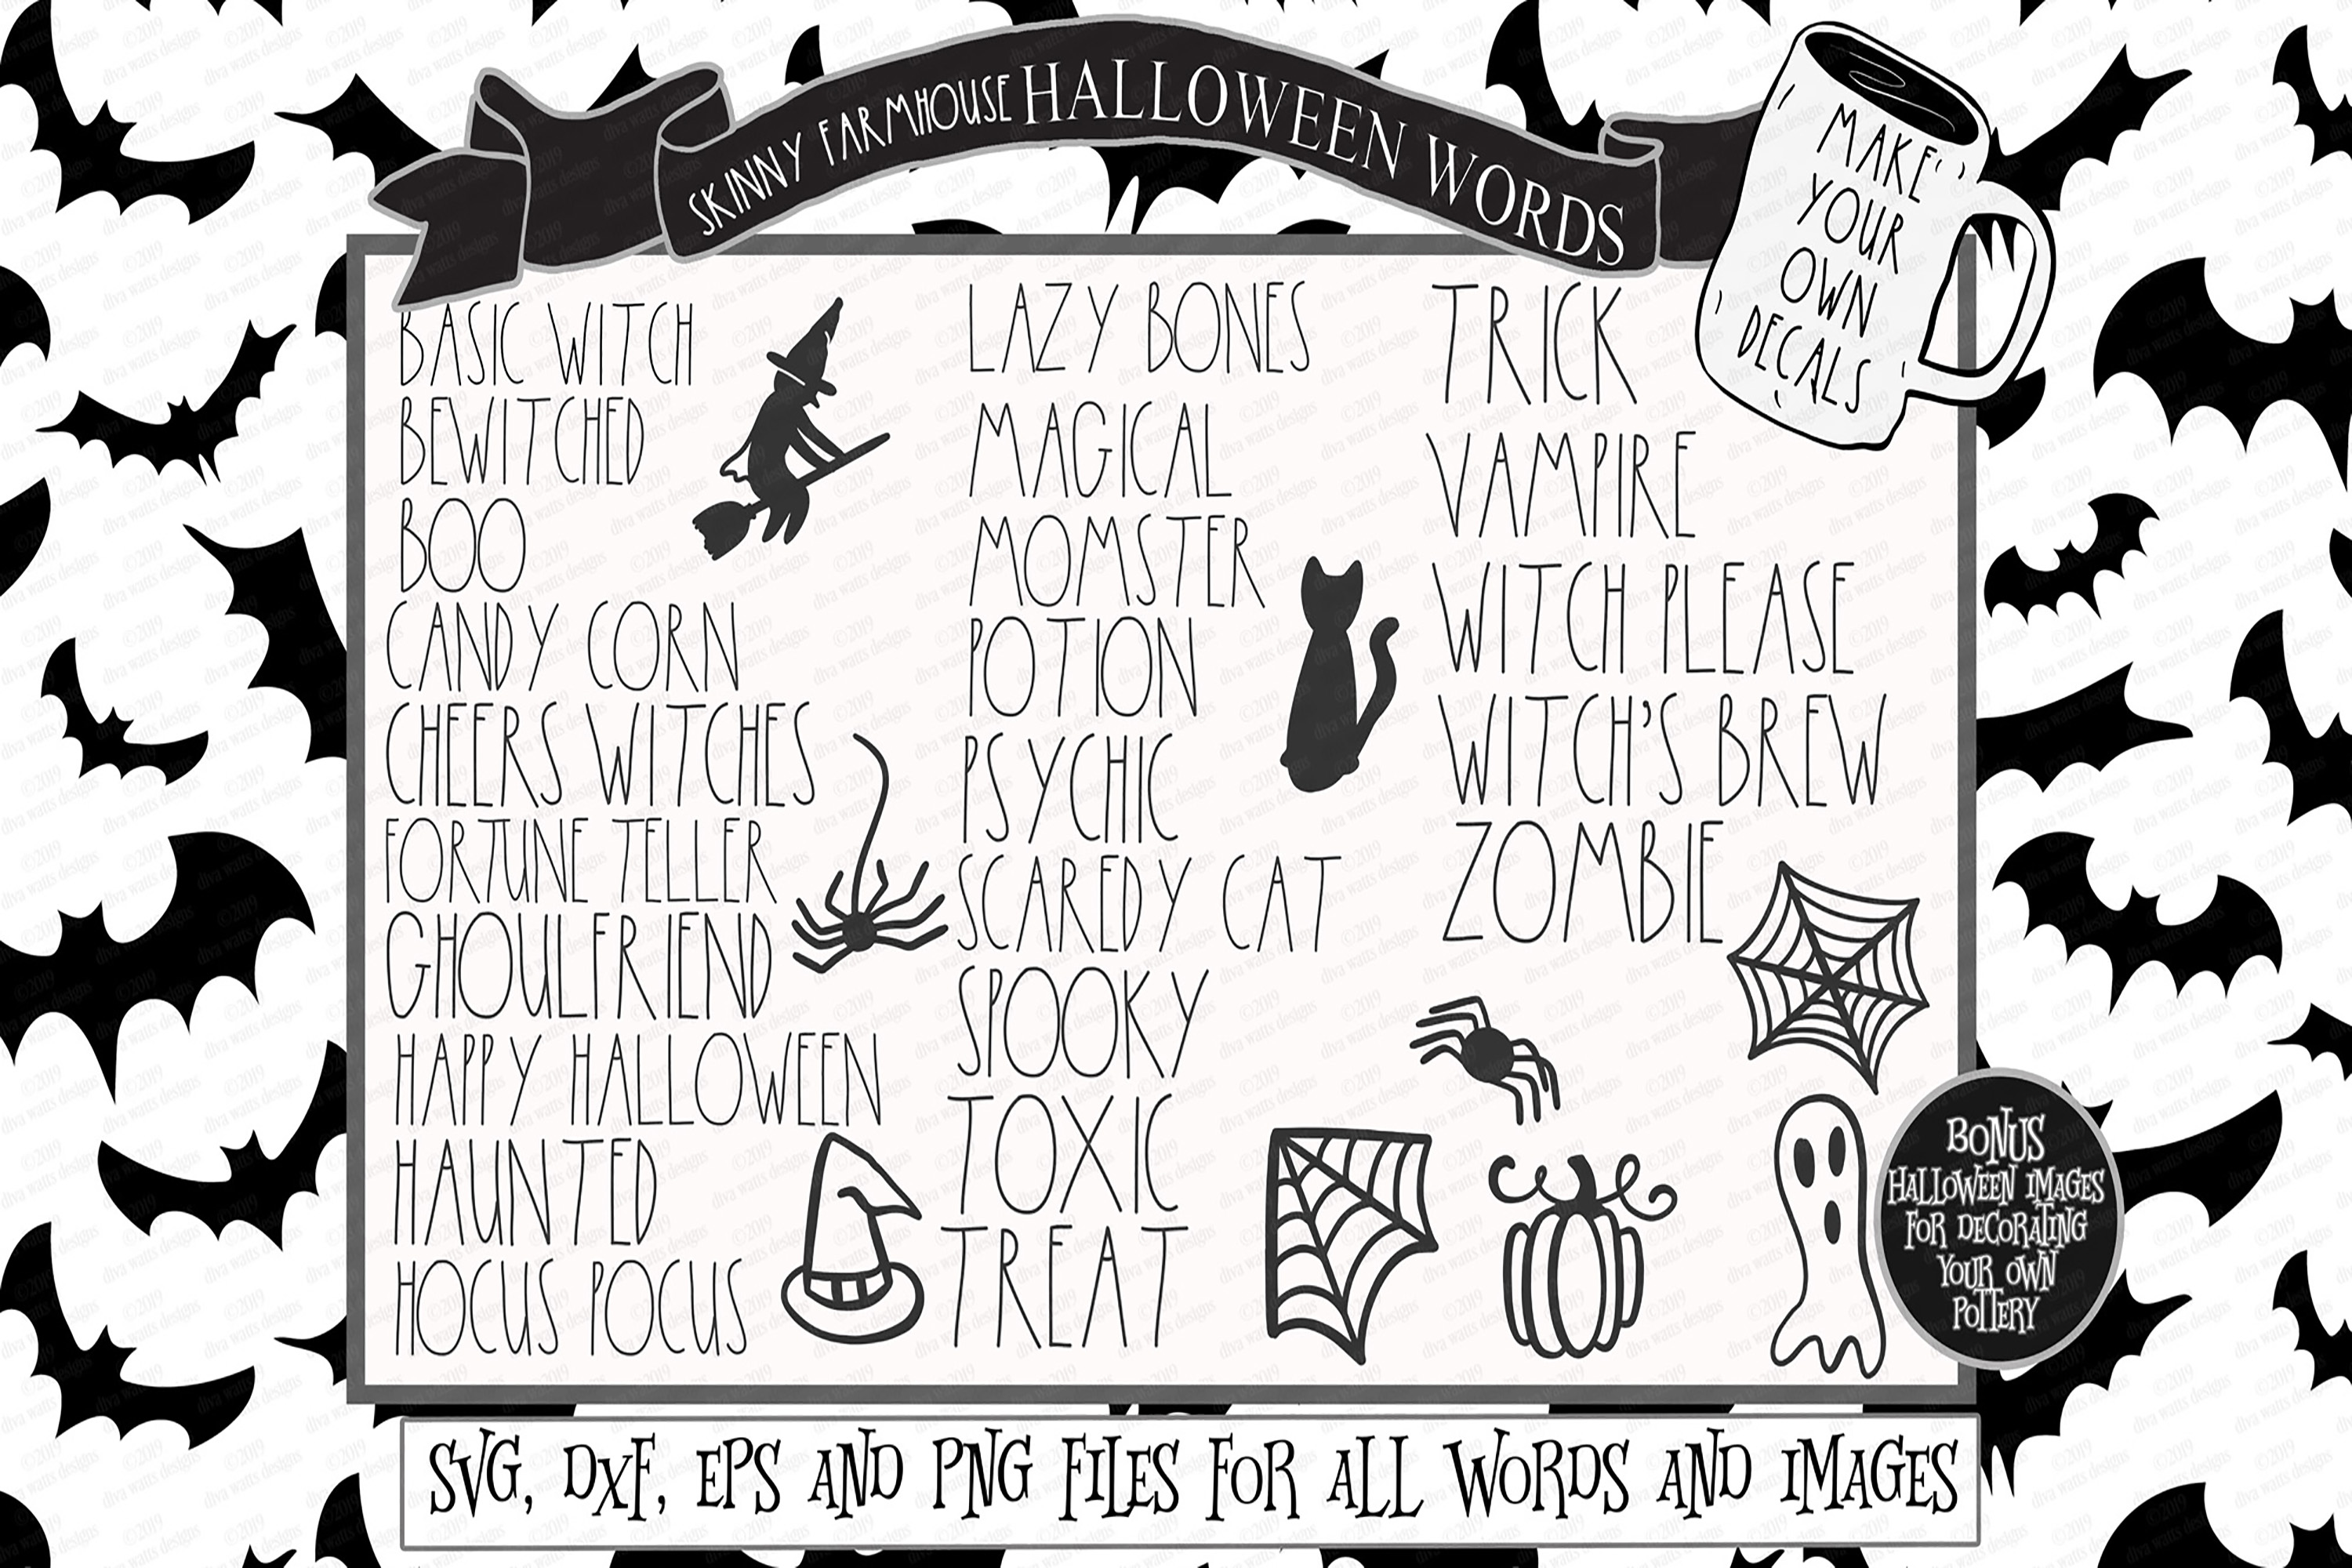 Skinny Farmhouse Halloween Words for Decals Cutting Files example image 1